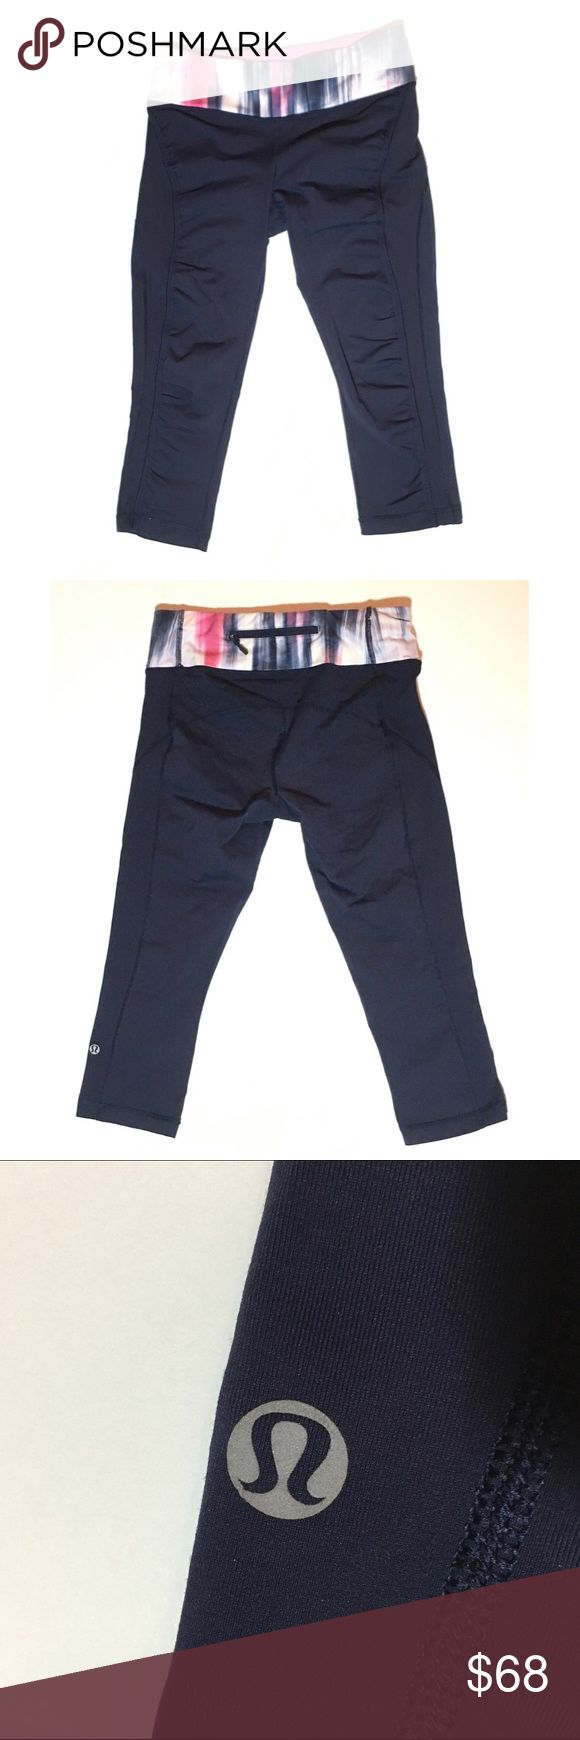 Lululemon Run Sun Sprinter Crop Deep indigo and mirage waistband crop. Excellent condition! No trades, lowest, or lowballs please! Happy to consider reasonable offers through the offer feature. No modeling - please refer to stock photos online :) lululemon athletica Pants Ankle & Cropped